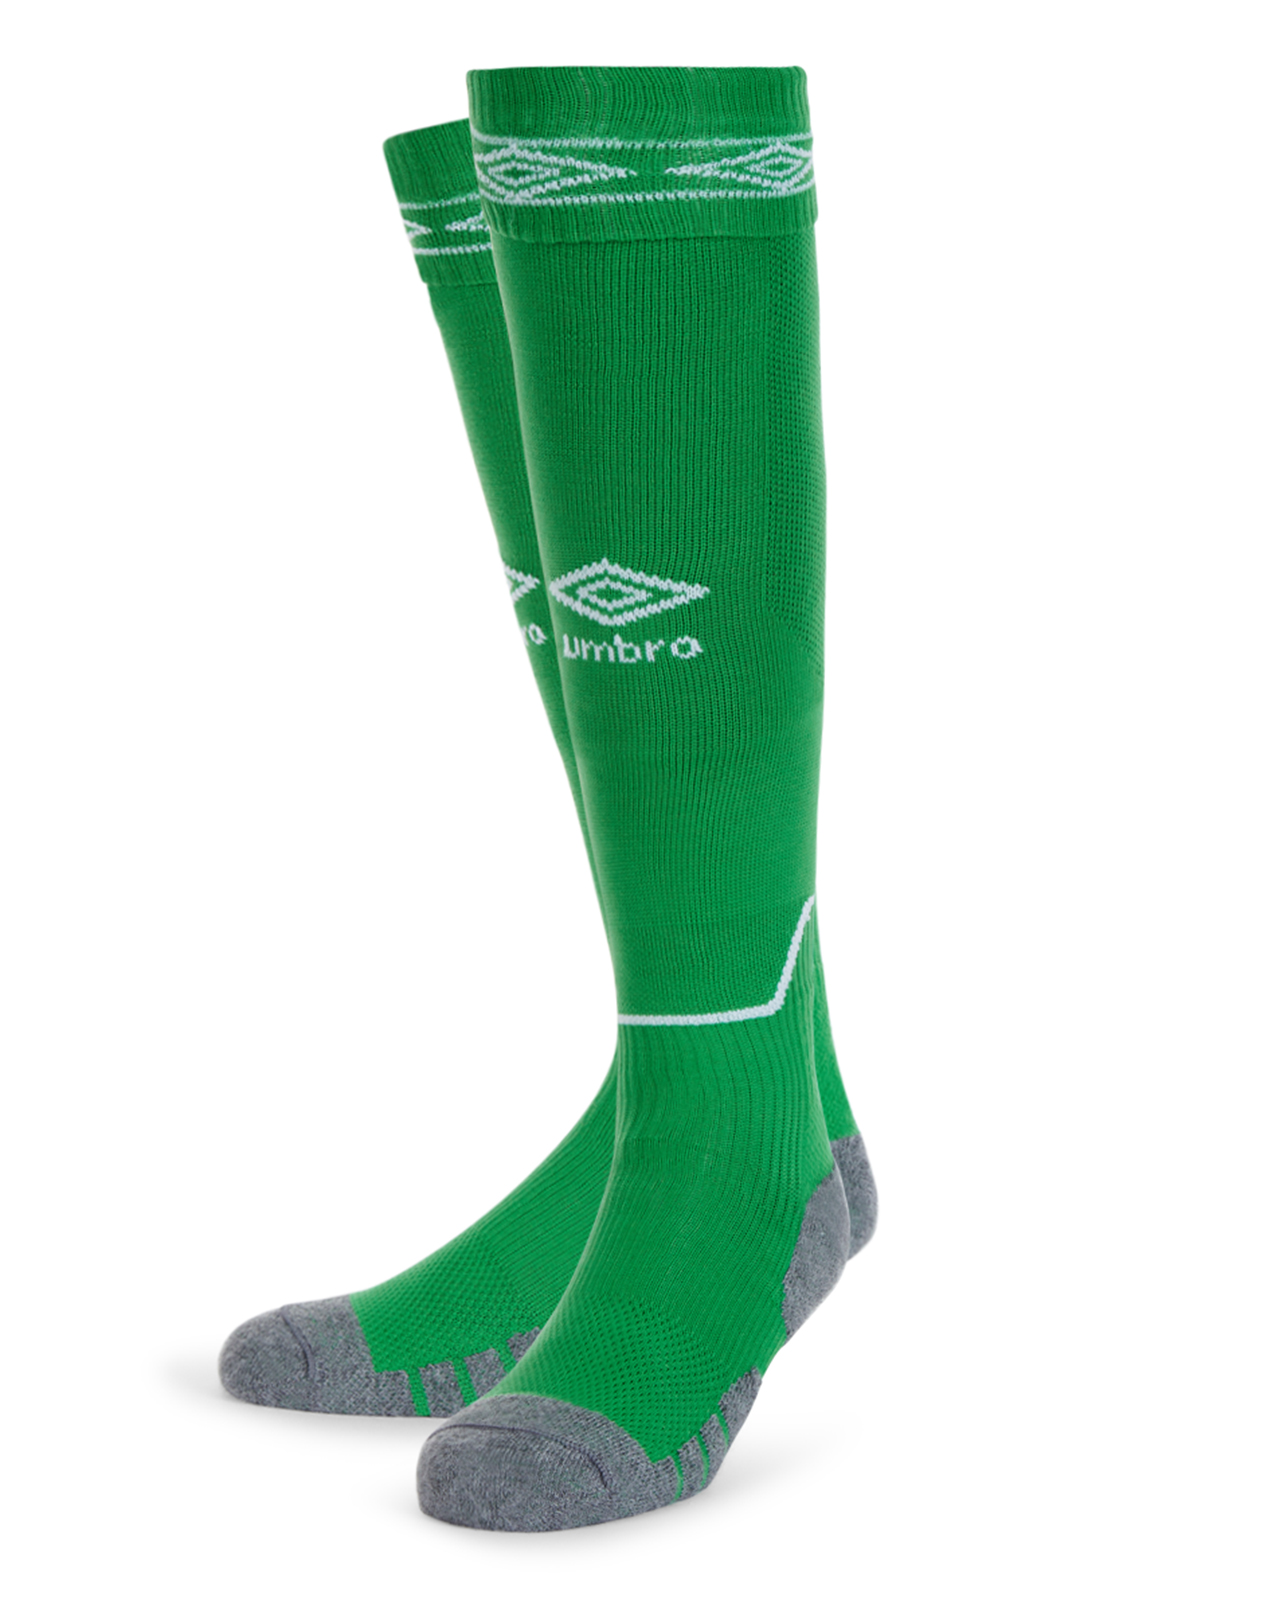 Umbro Diamond Top Socks in emerald with white Diamond turnover design